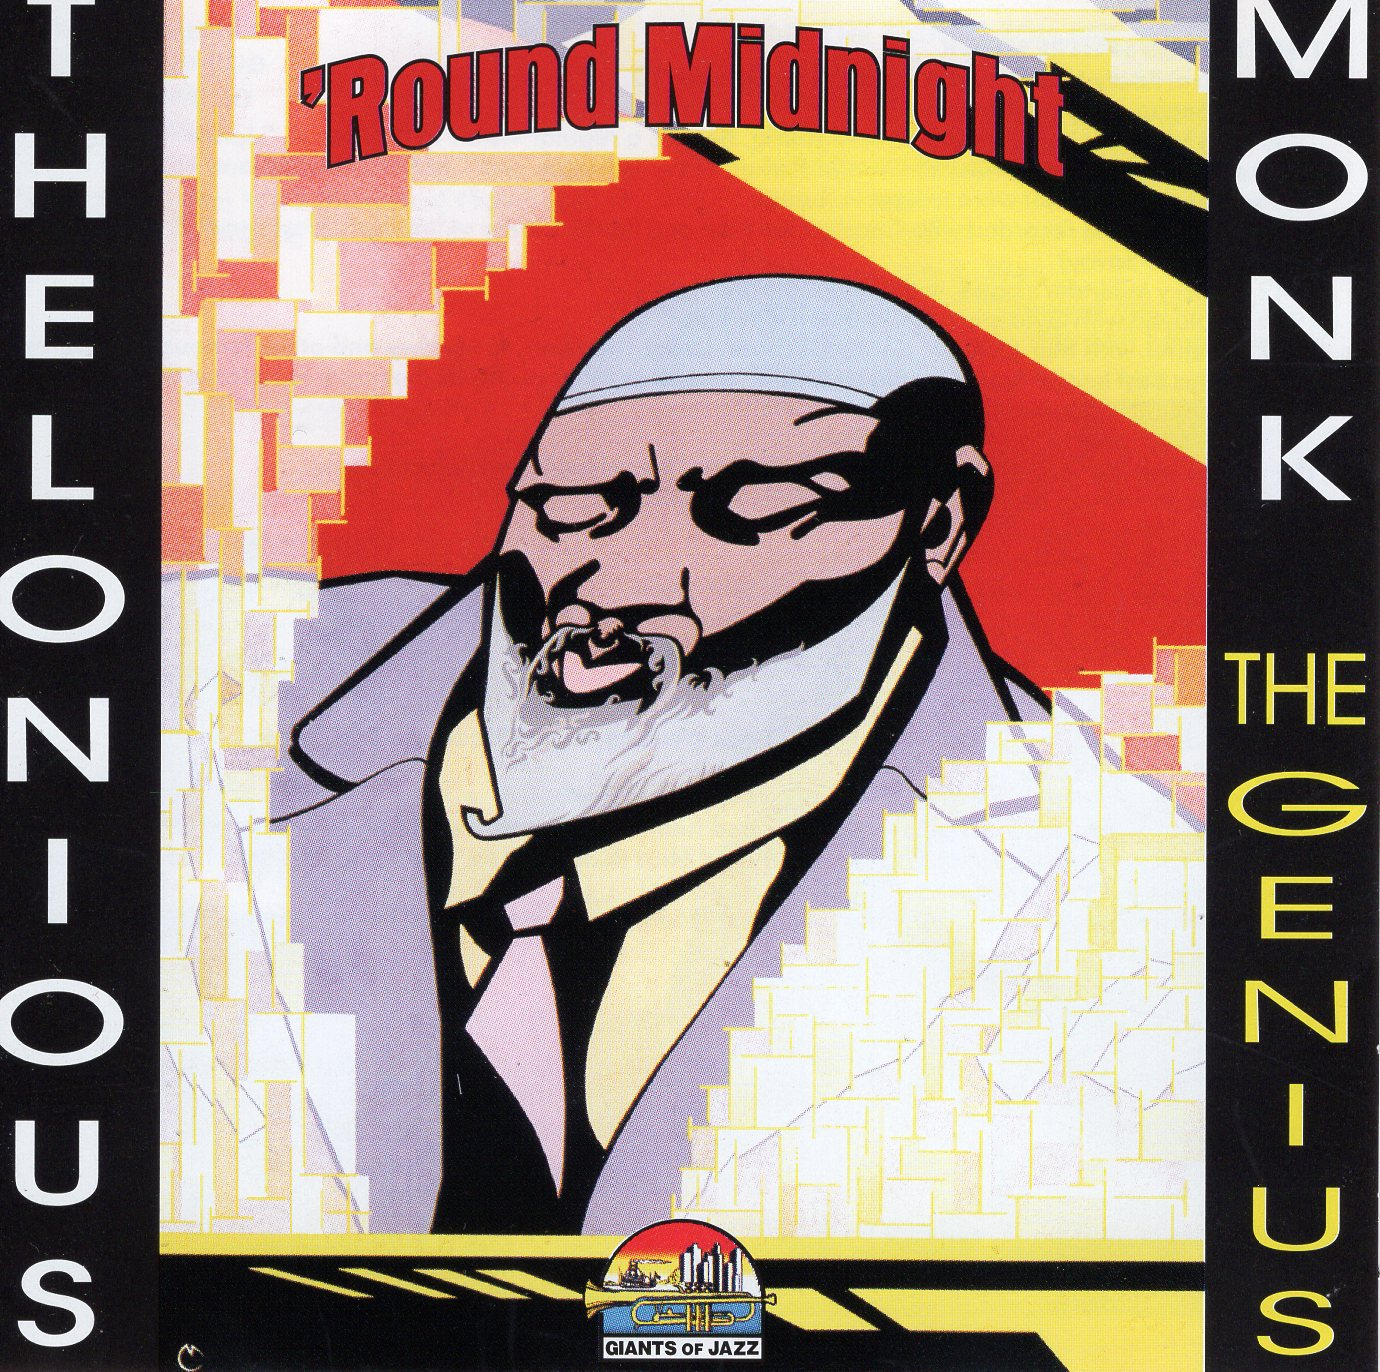 """Round Midnight: The Genius"" Thelonious Monk"